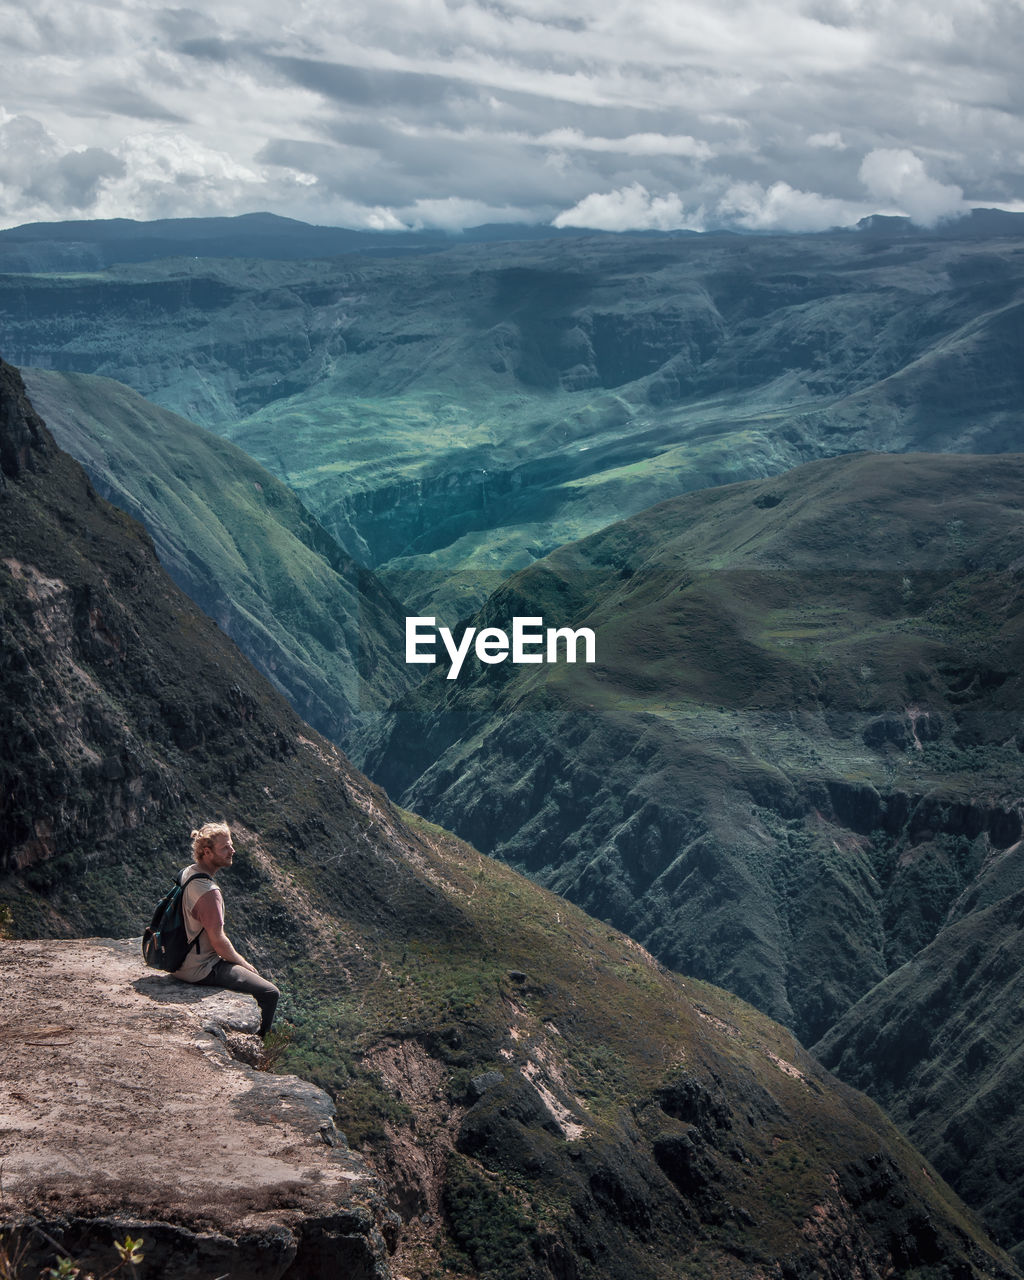 mountain, leisure activity, scenics - nature, beauty in nature, sitting, one person, lifestyles, tranquility, cloud - sky, non-urban scene, real people, tranquil scene, sky, nature, mountain range, vacations, holiday, environment, trip, adventure, looking at view, outdoors